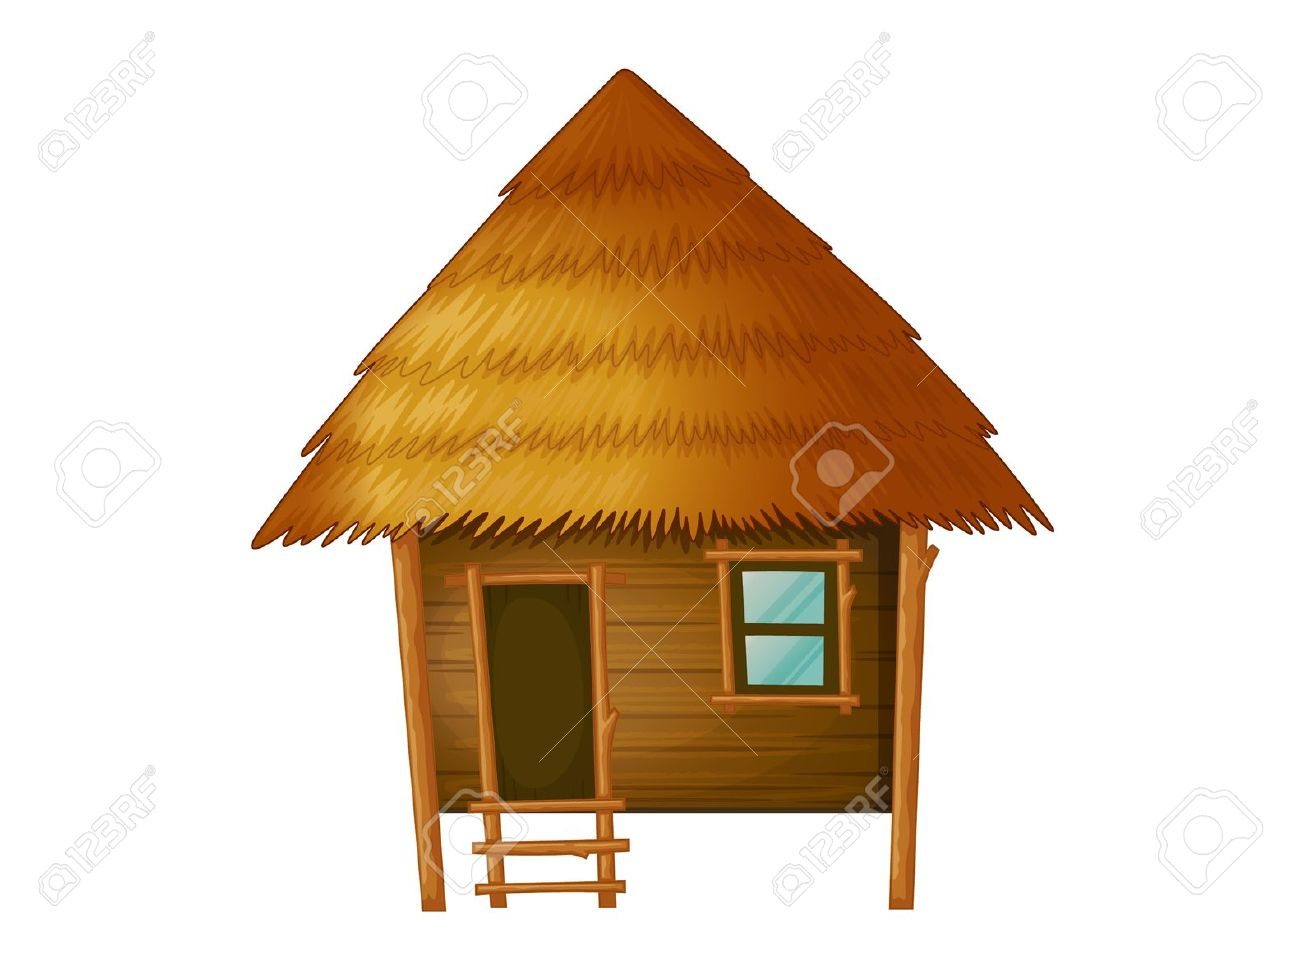 Cottage clipart bamboo house Download clipart Hut Download clipart